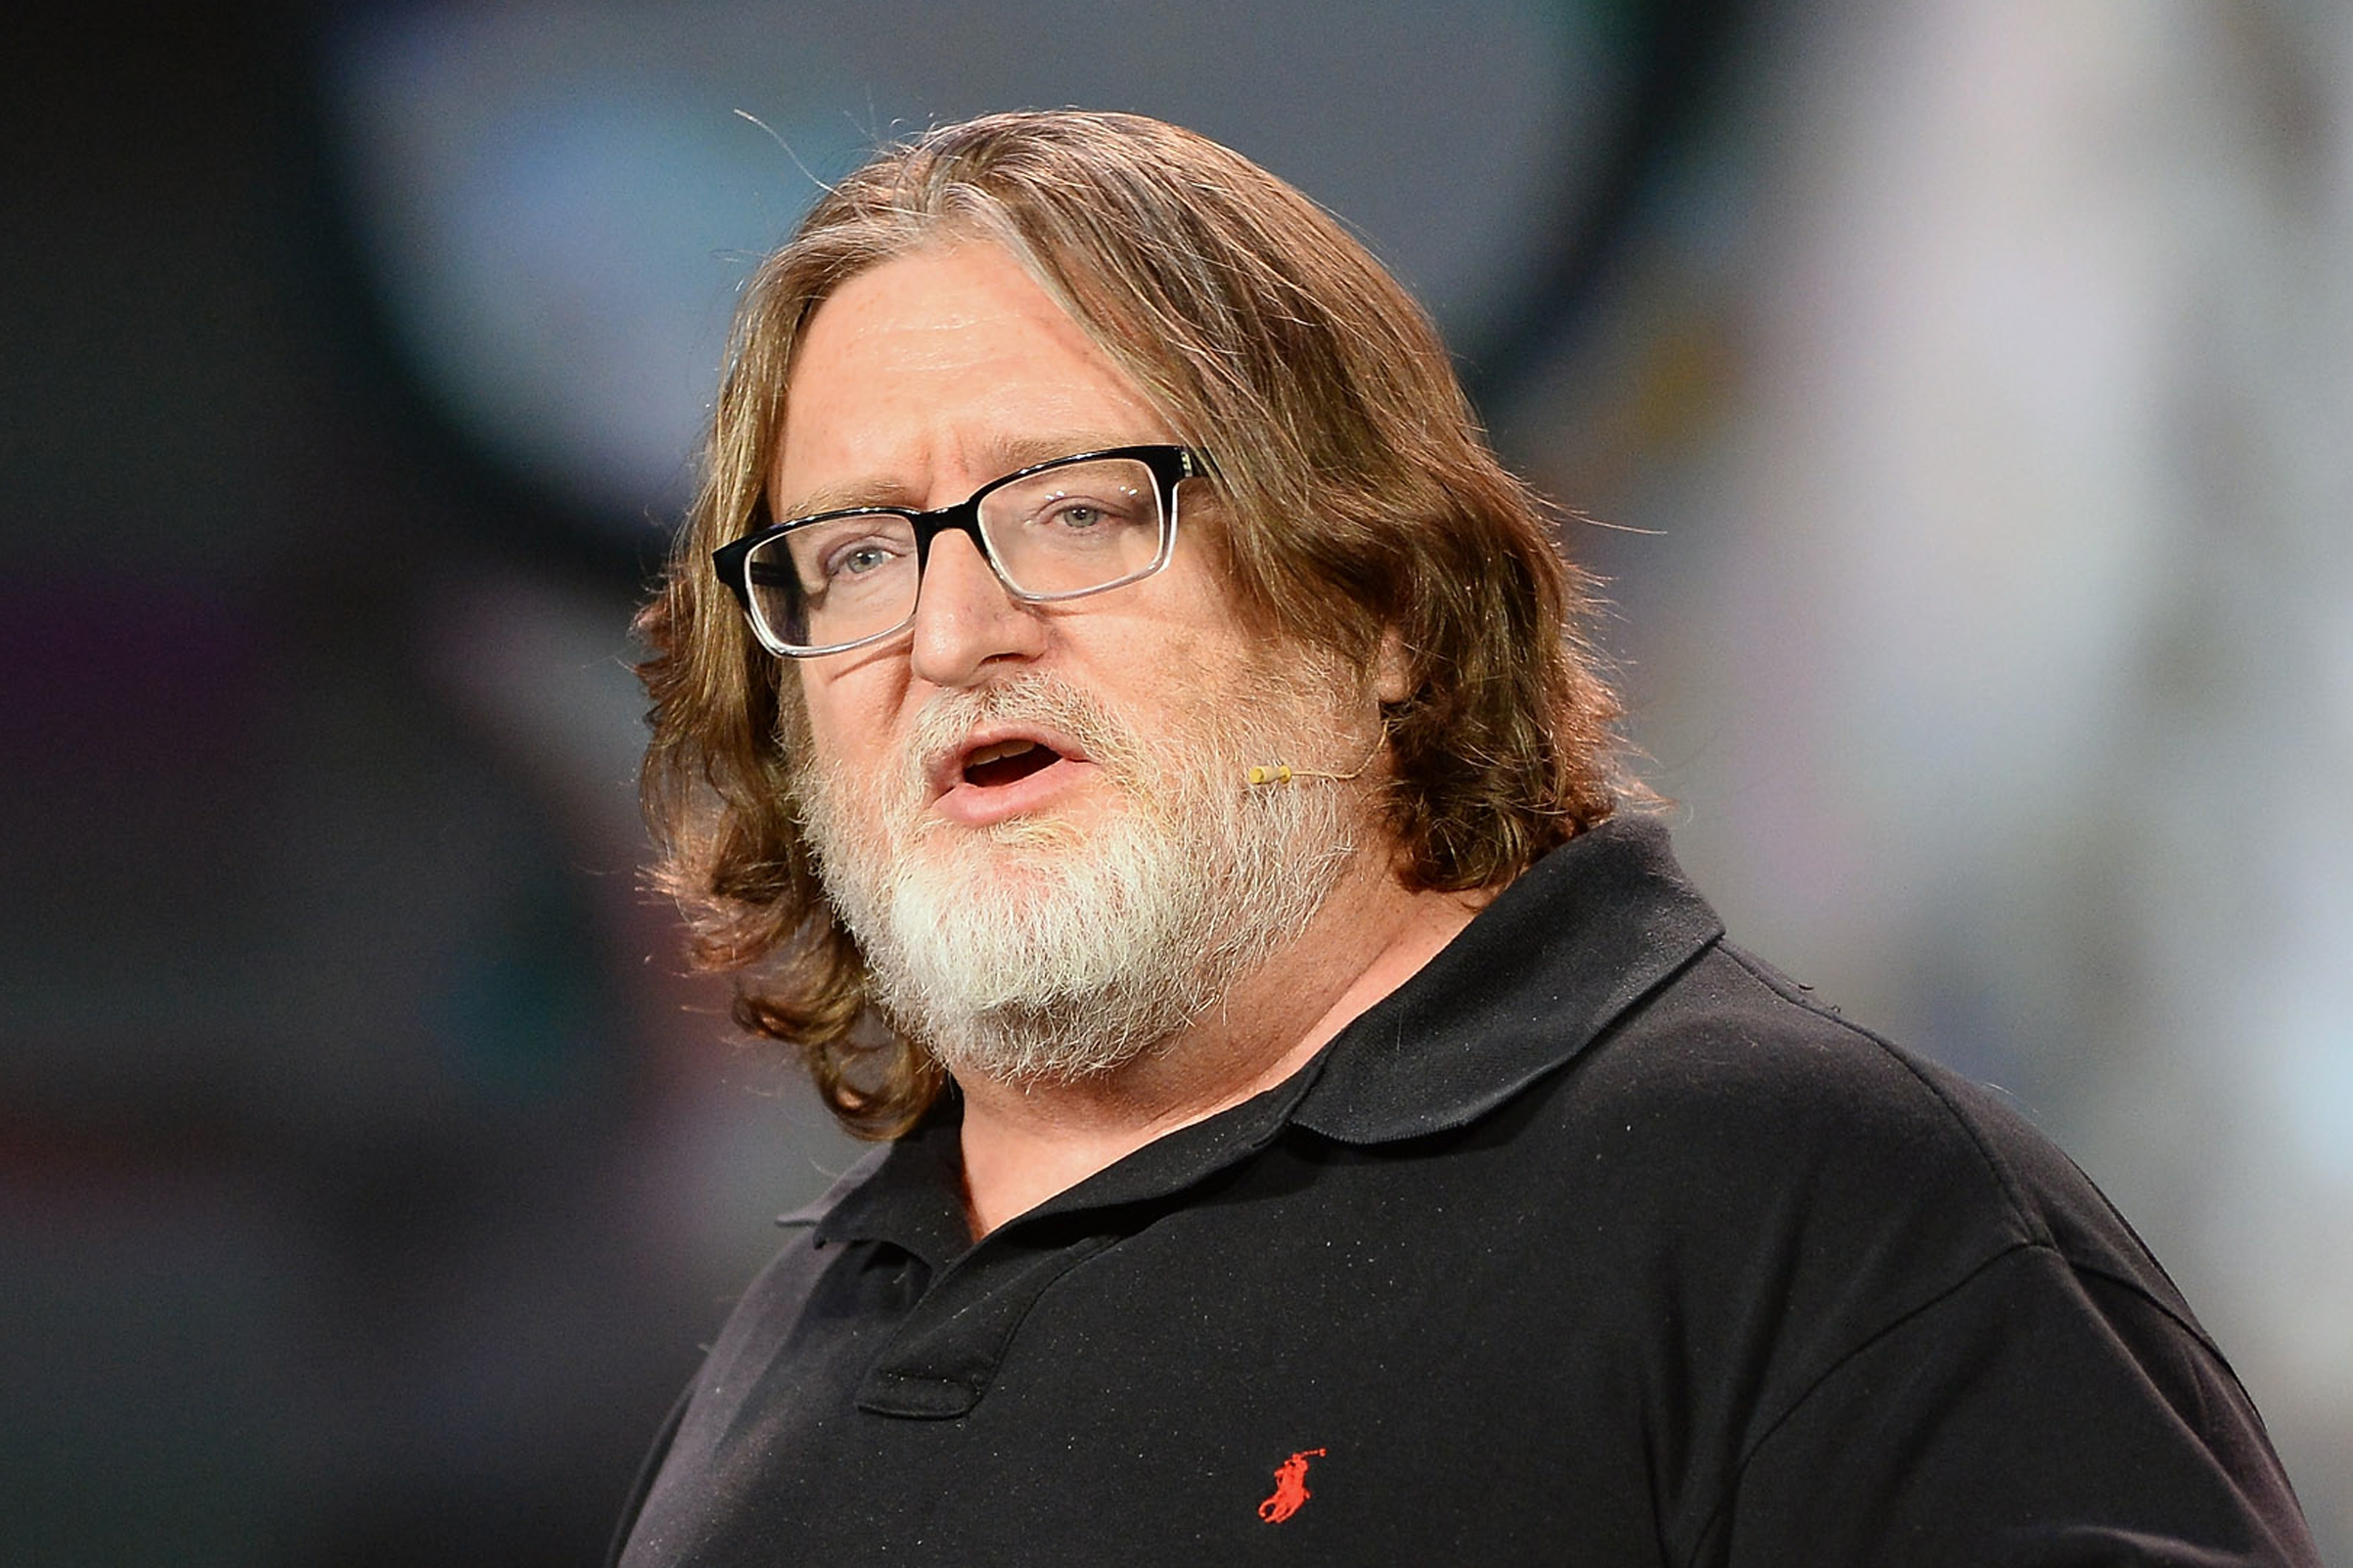 Gabe Newell, co-founder of video game developer and distributor Valve, speaks during Krzanich's keynote address at the 2014 International CES at The Venetian Las Vegas on January 6, 2014 in Las Vegas, Nevada.